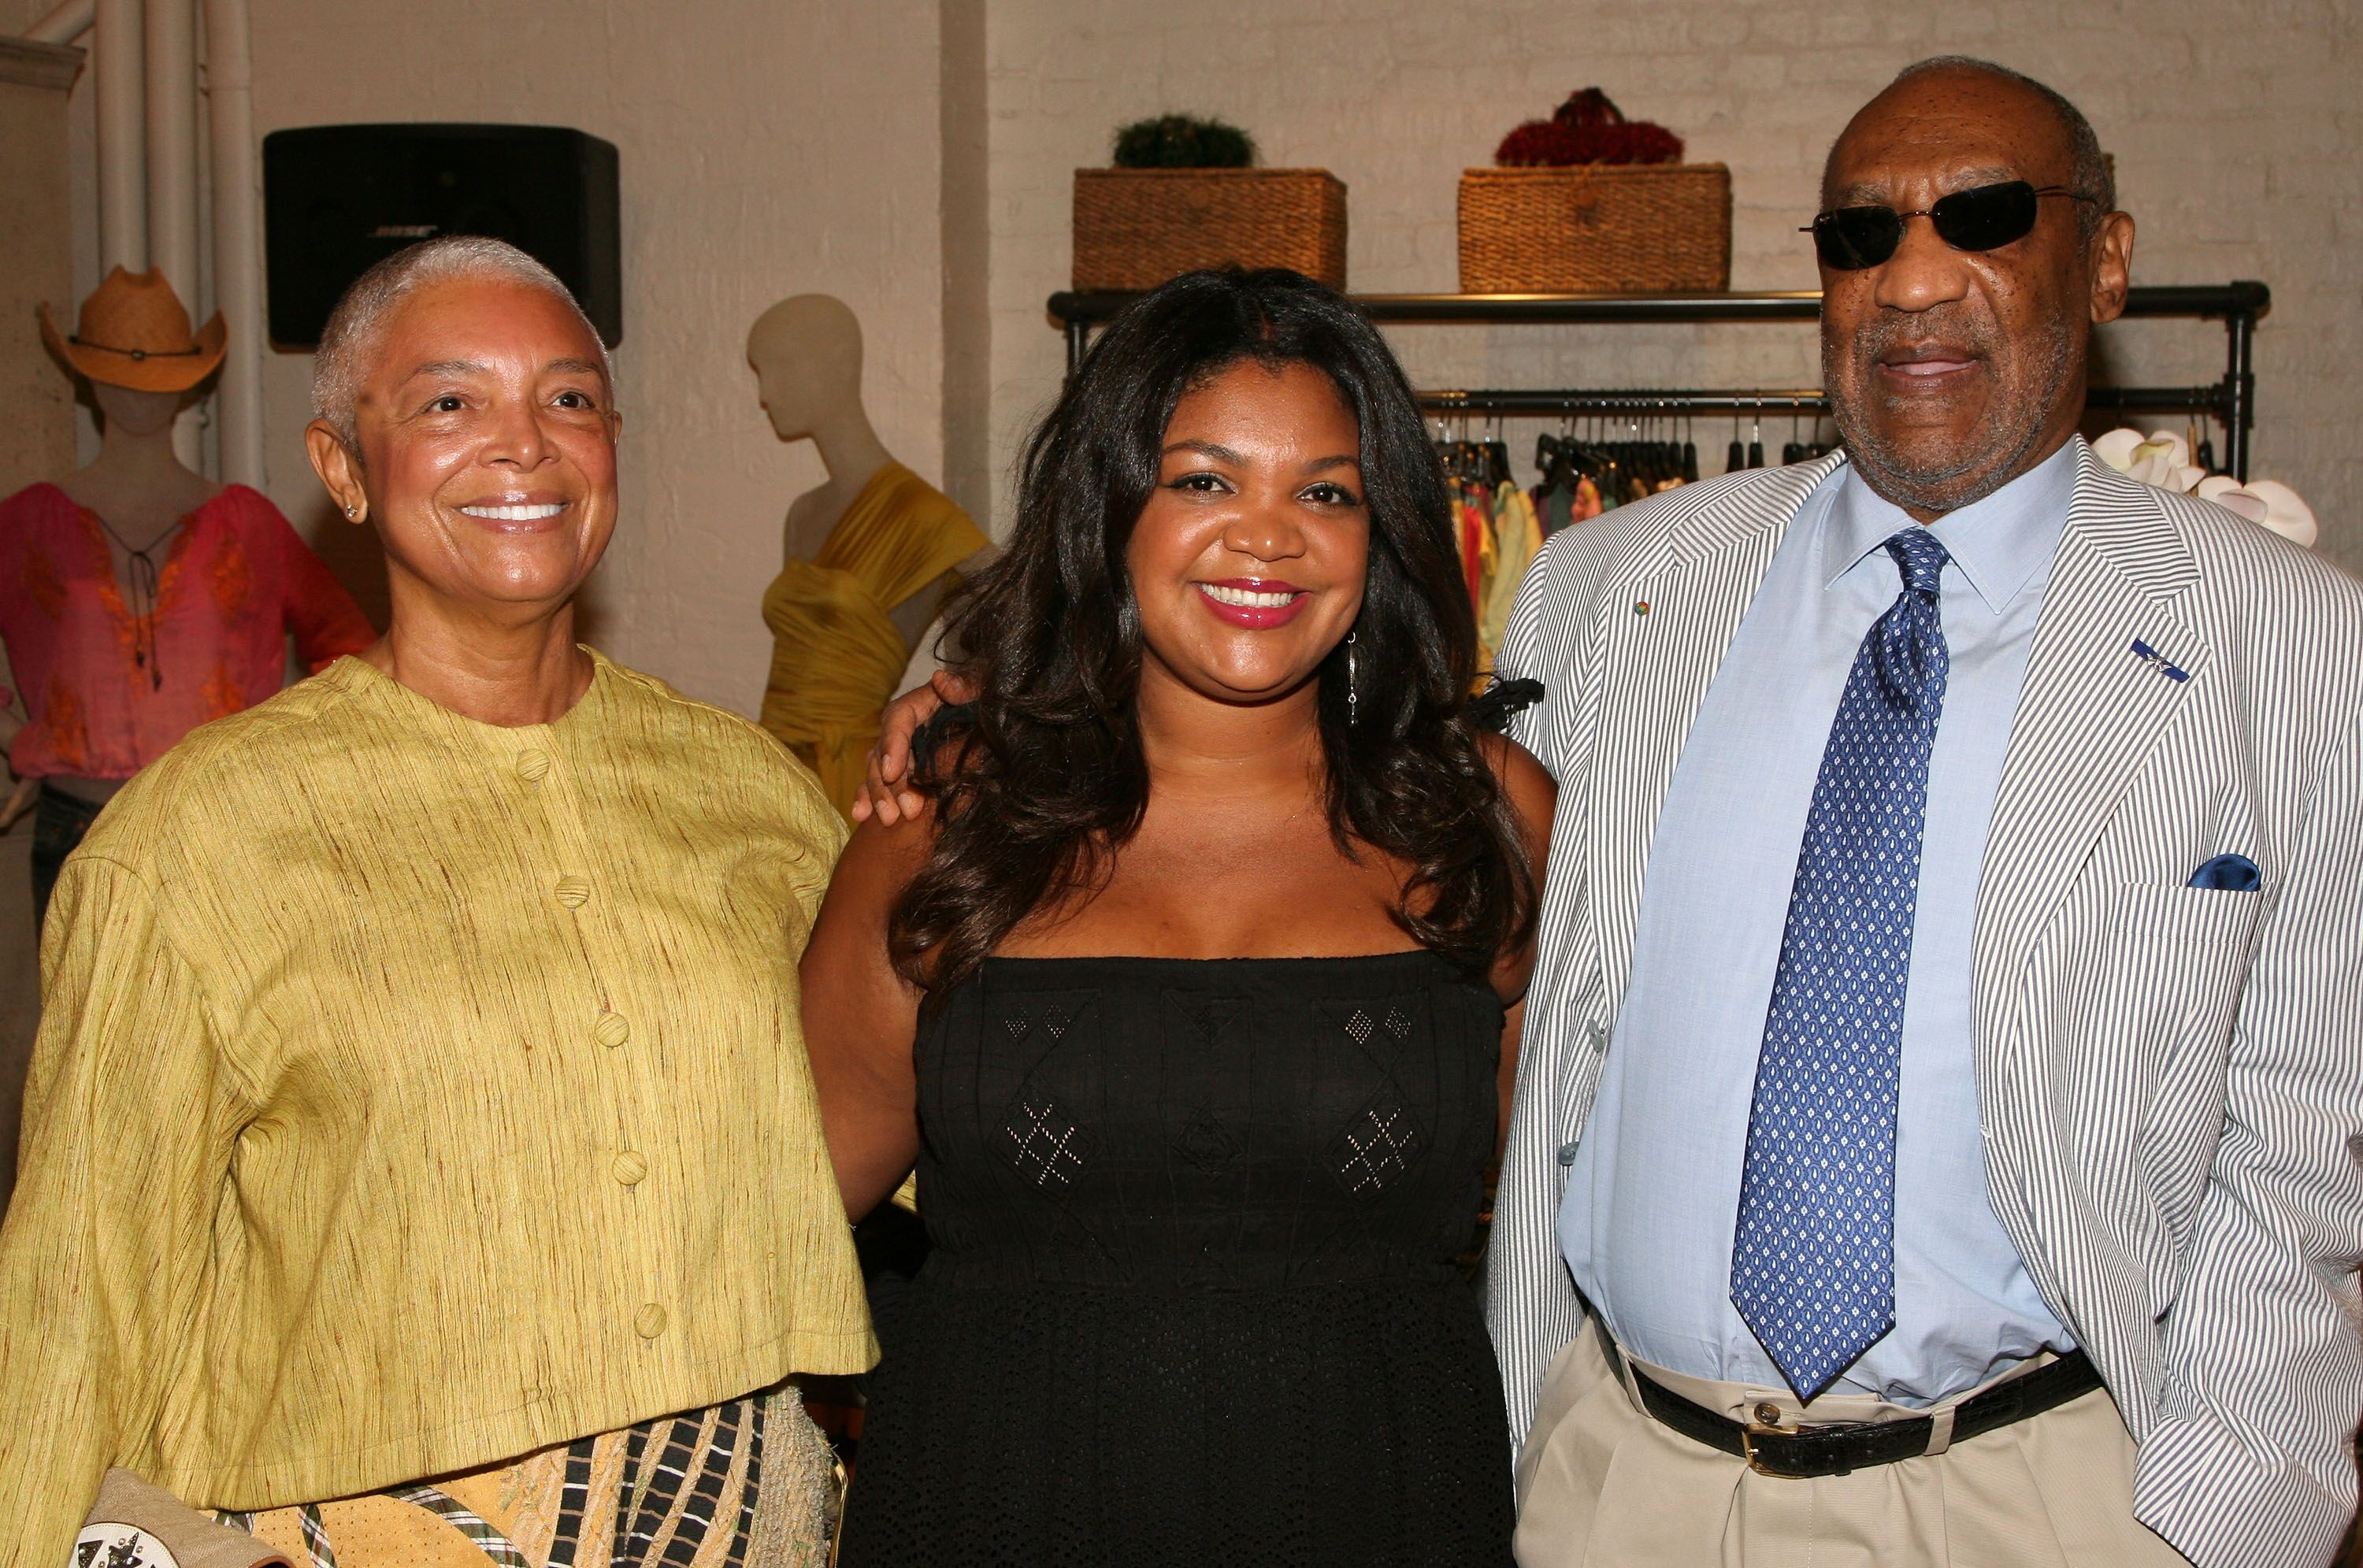 Camille, Evin and Bill Cosby at the launch of the pb&Caviar store in 2008 in New York City | Source: Getty Images